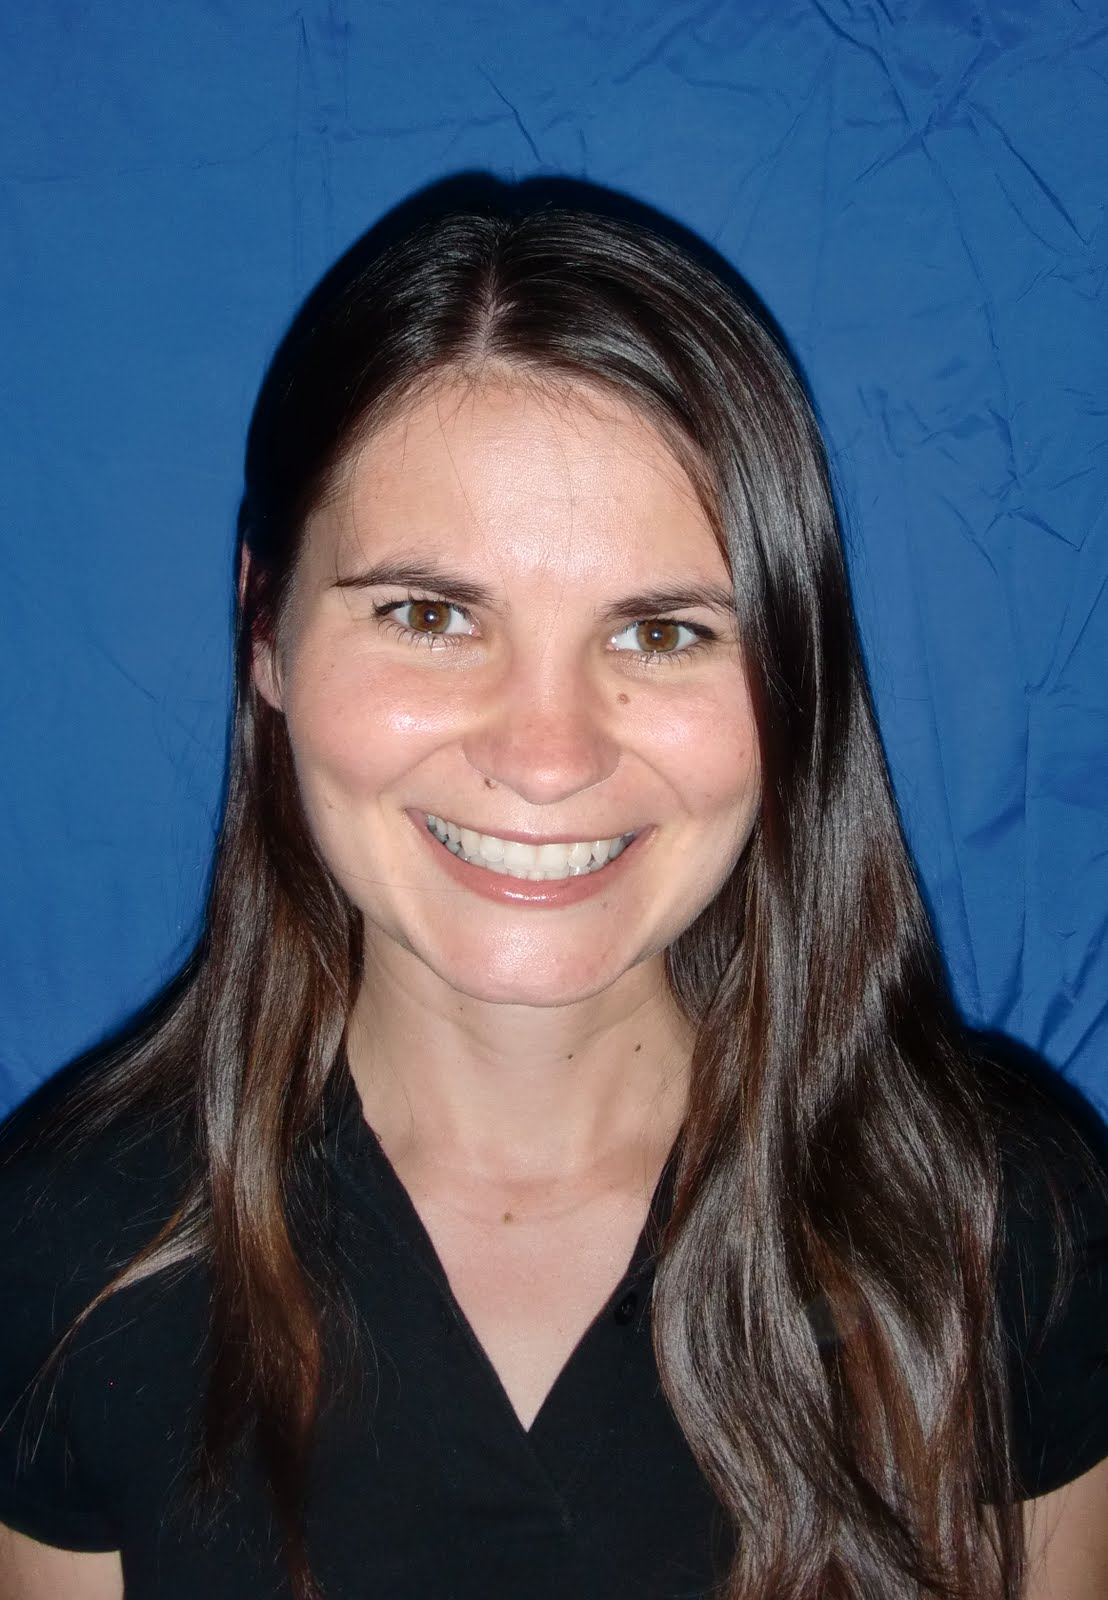 Dasha Henderer is coming to USC from California State University, Fresno, ...